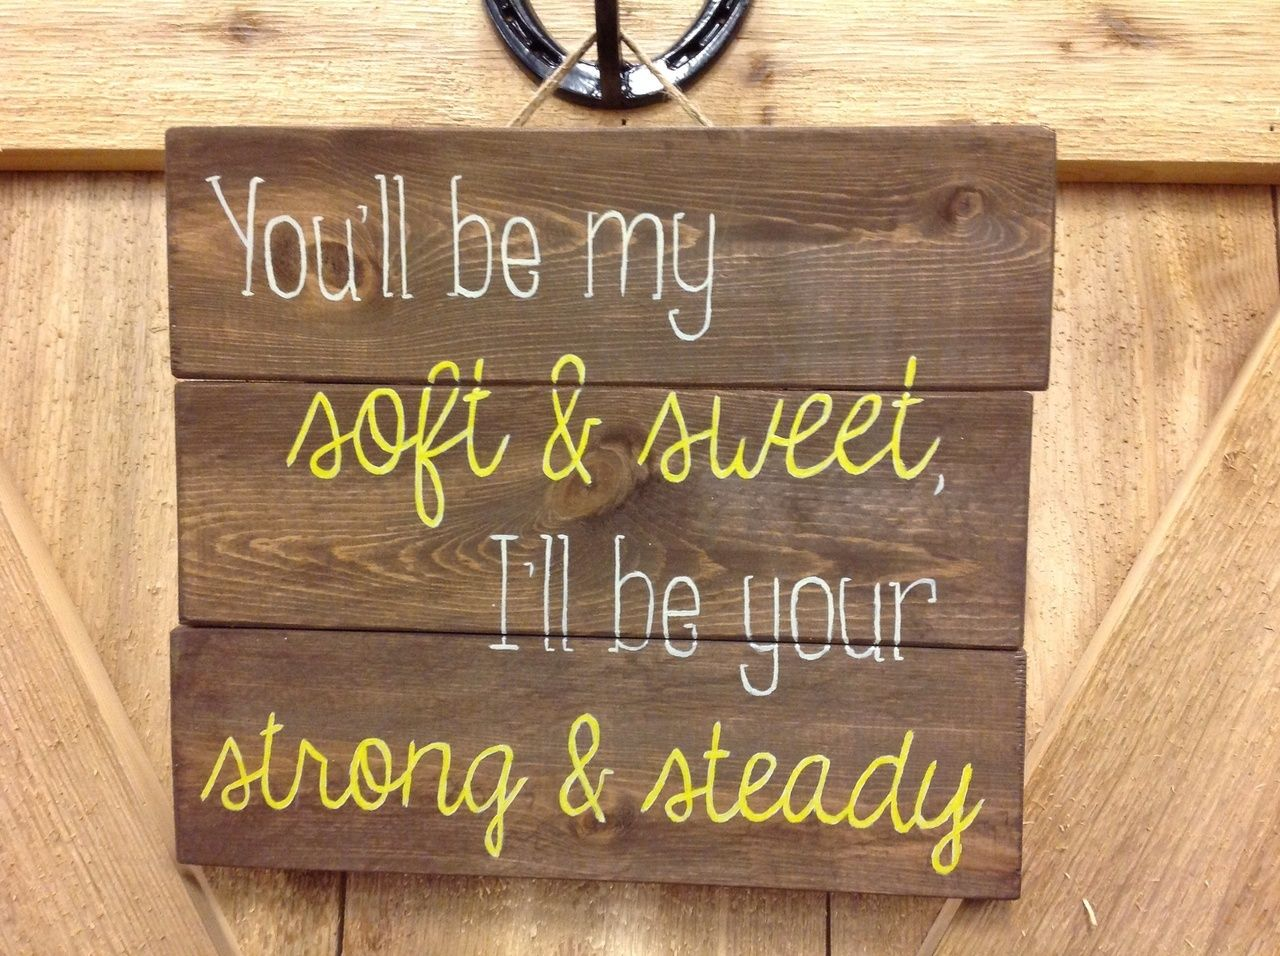 Wooden Decorative Signs Adorable Horse Treats And Discount Stable  Country Music Wooden Signs 2018